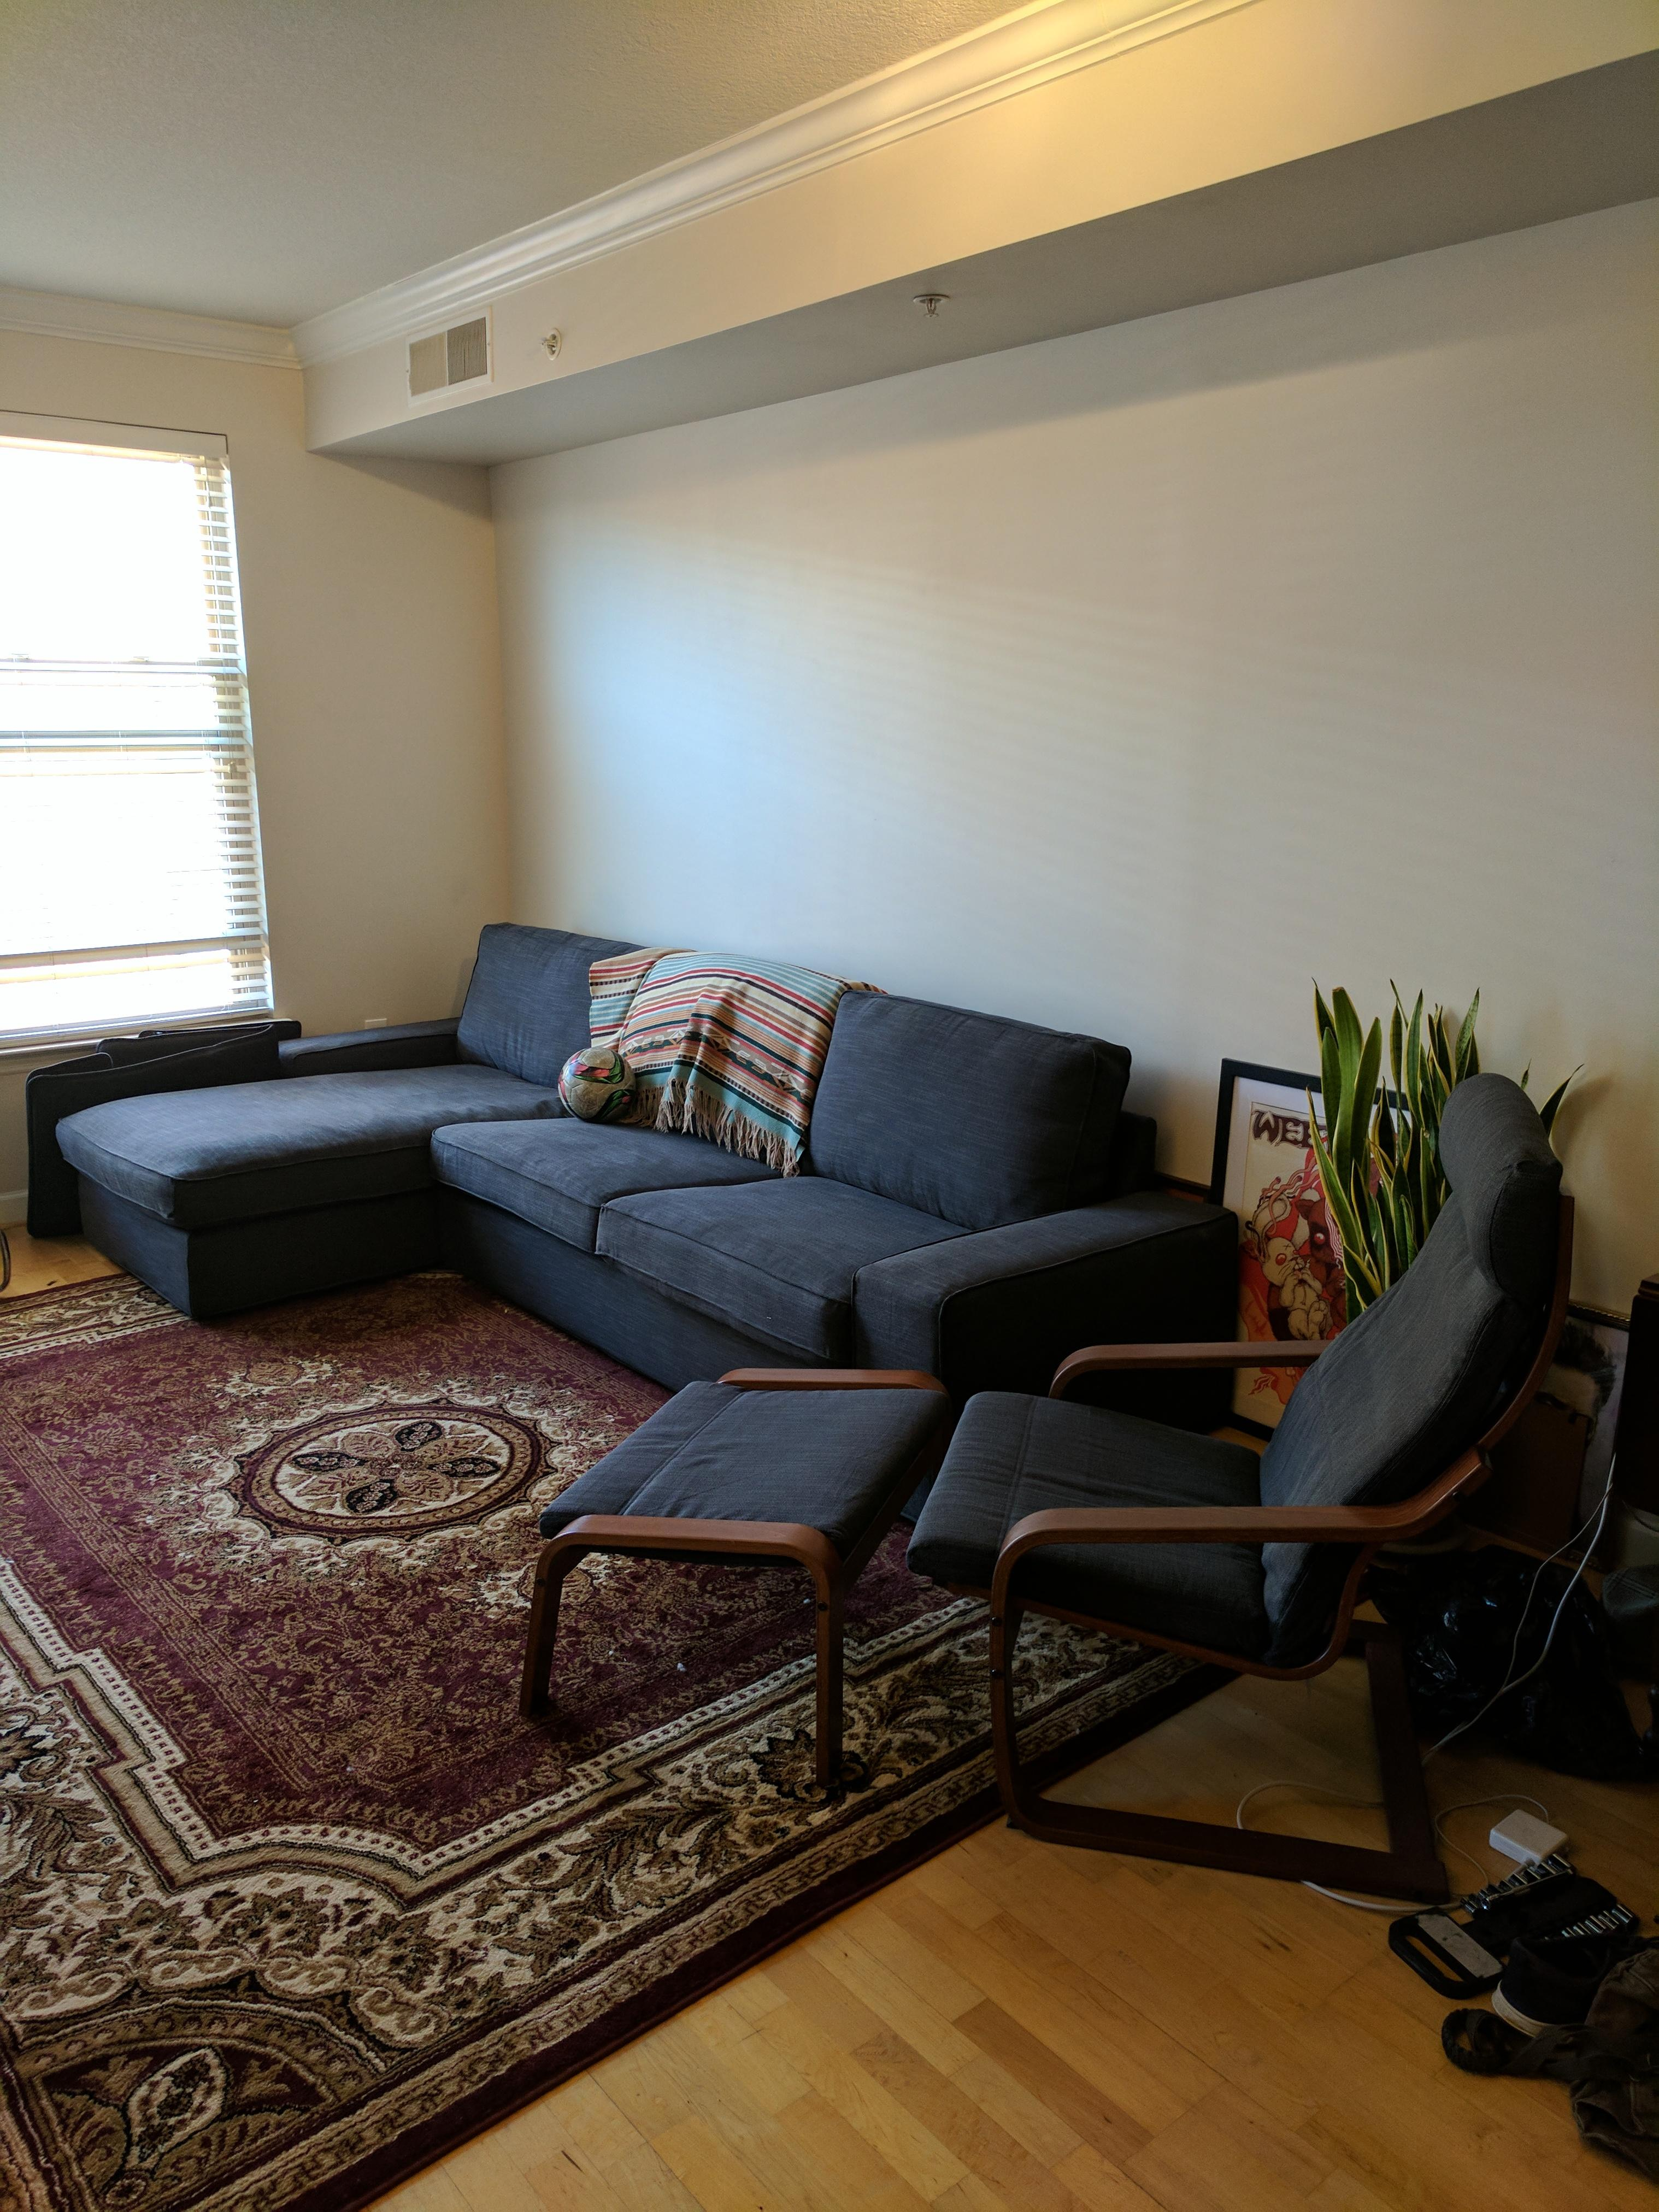 Sofa Couch Reddit Got A New Couch And I M Looking To Get Some Comfortable Accent